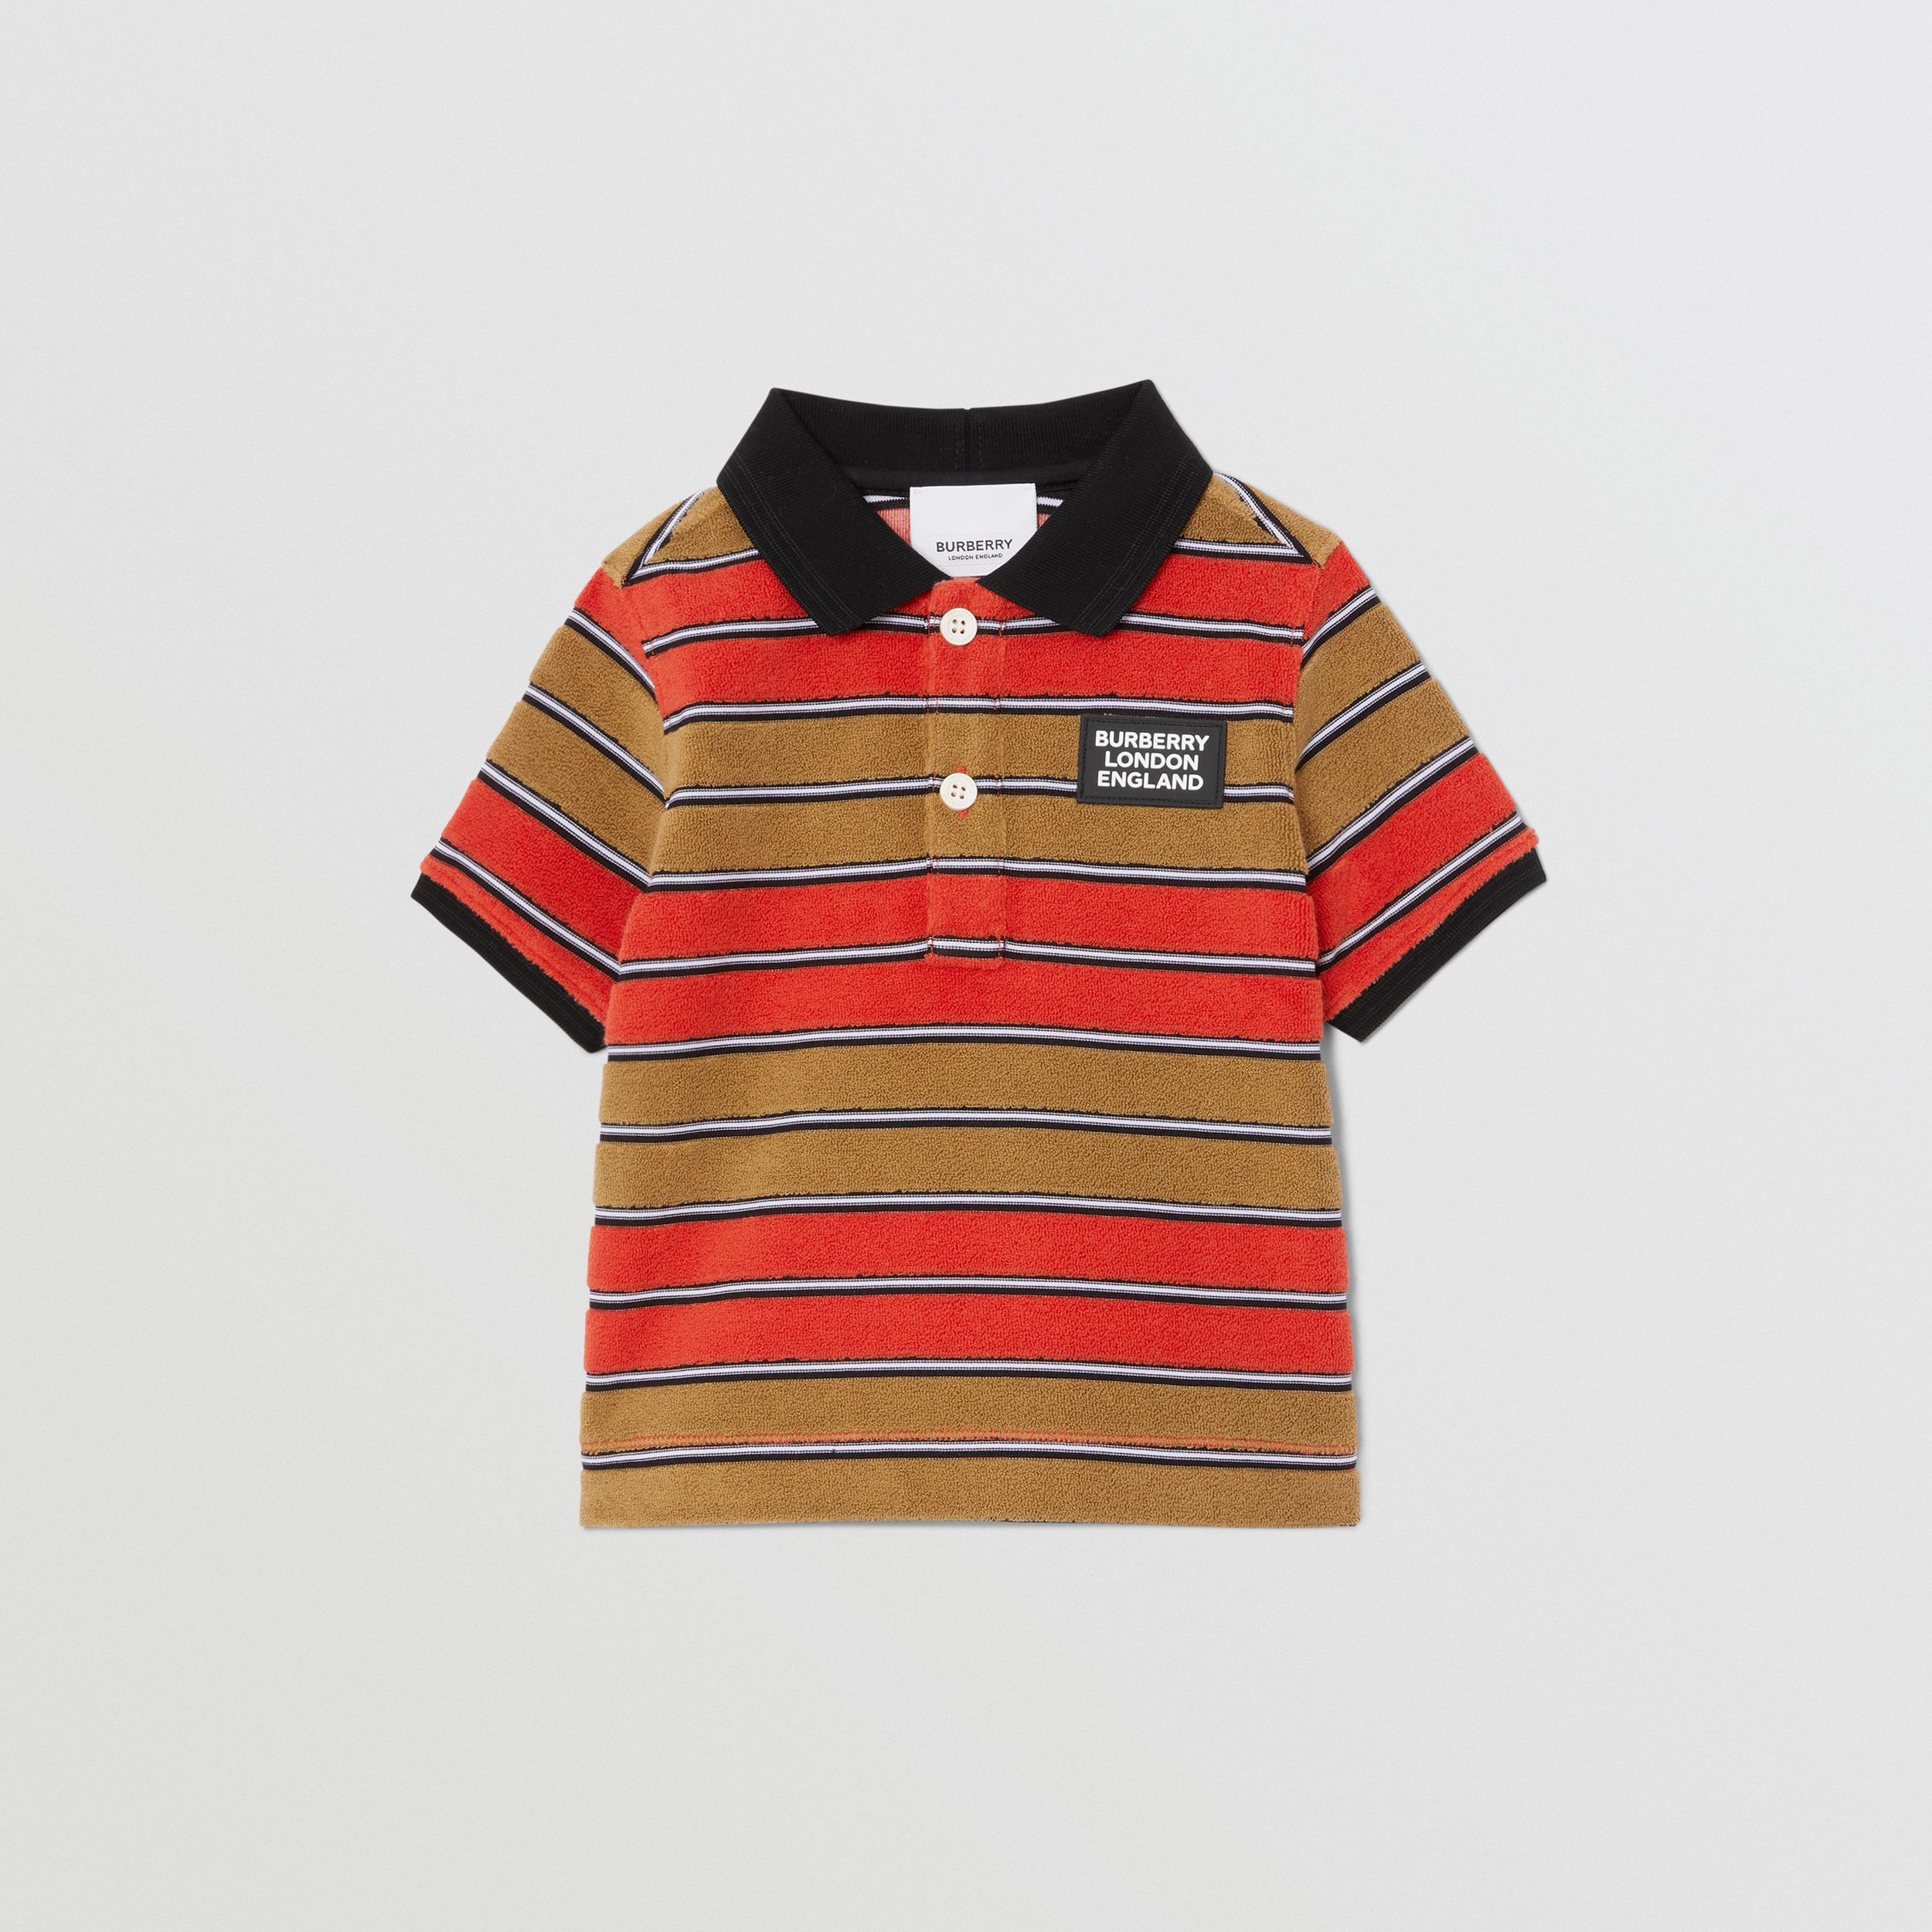 Logo Appliqué Striped Towelling Polo Shirt in Vermilion Red - Children | Burberry - 1